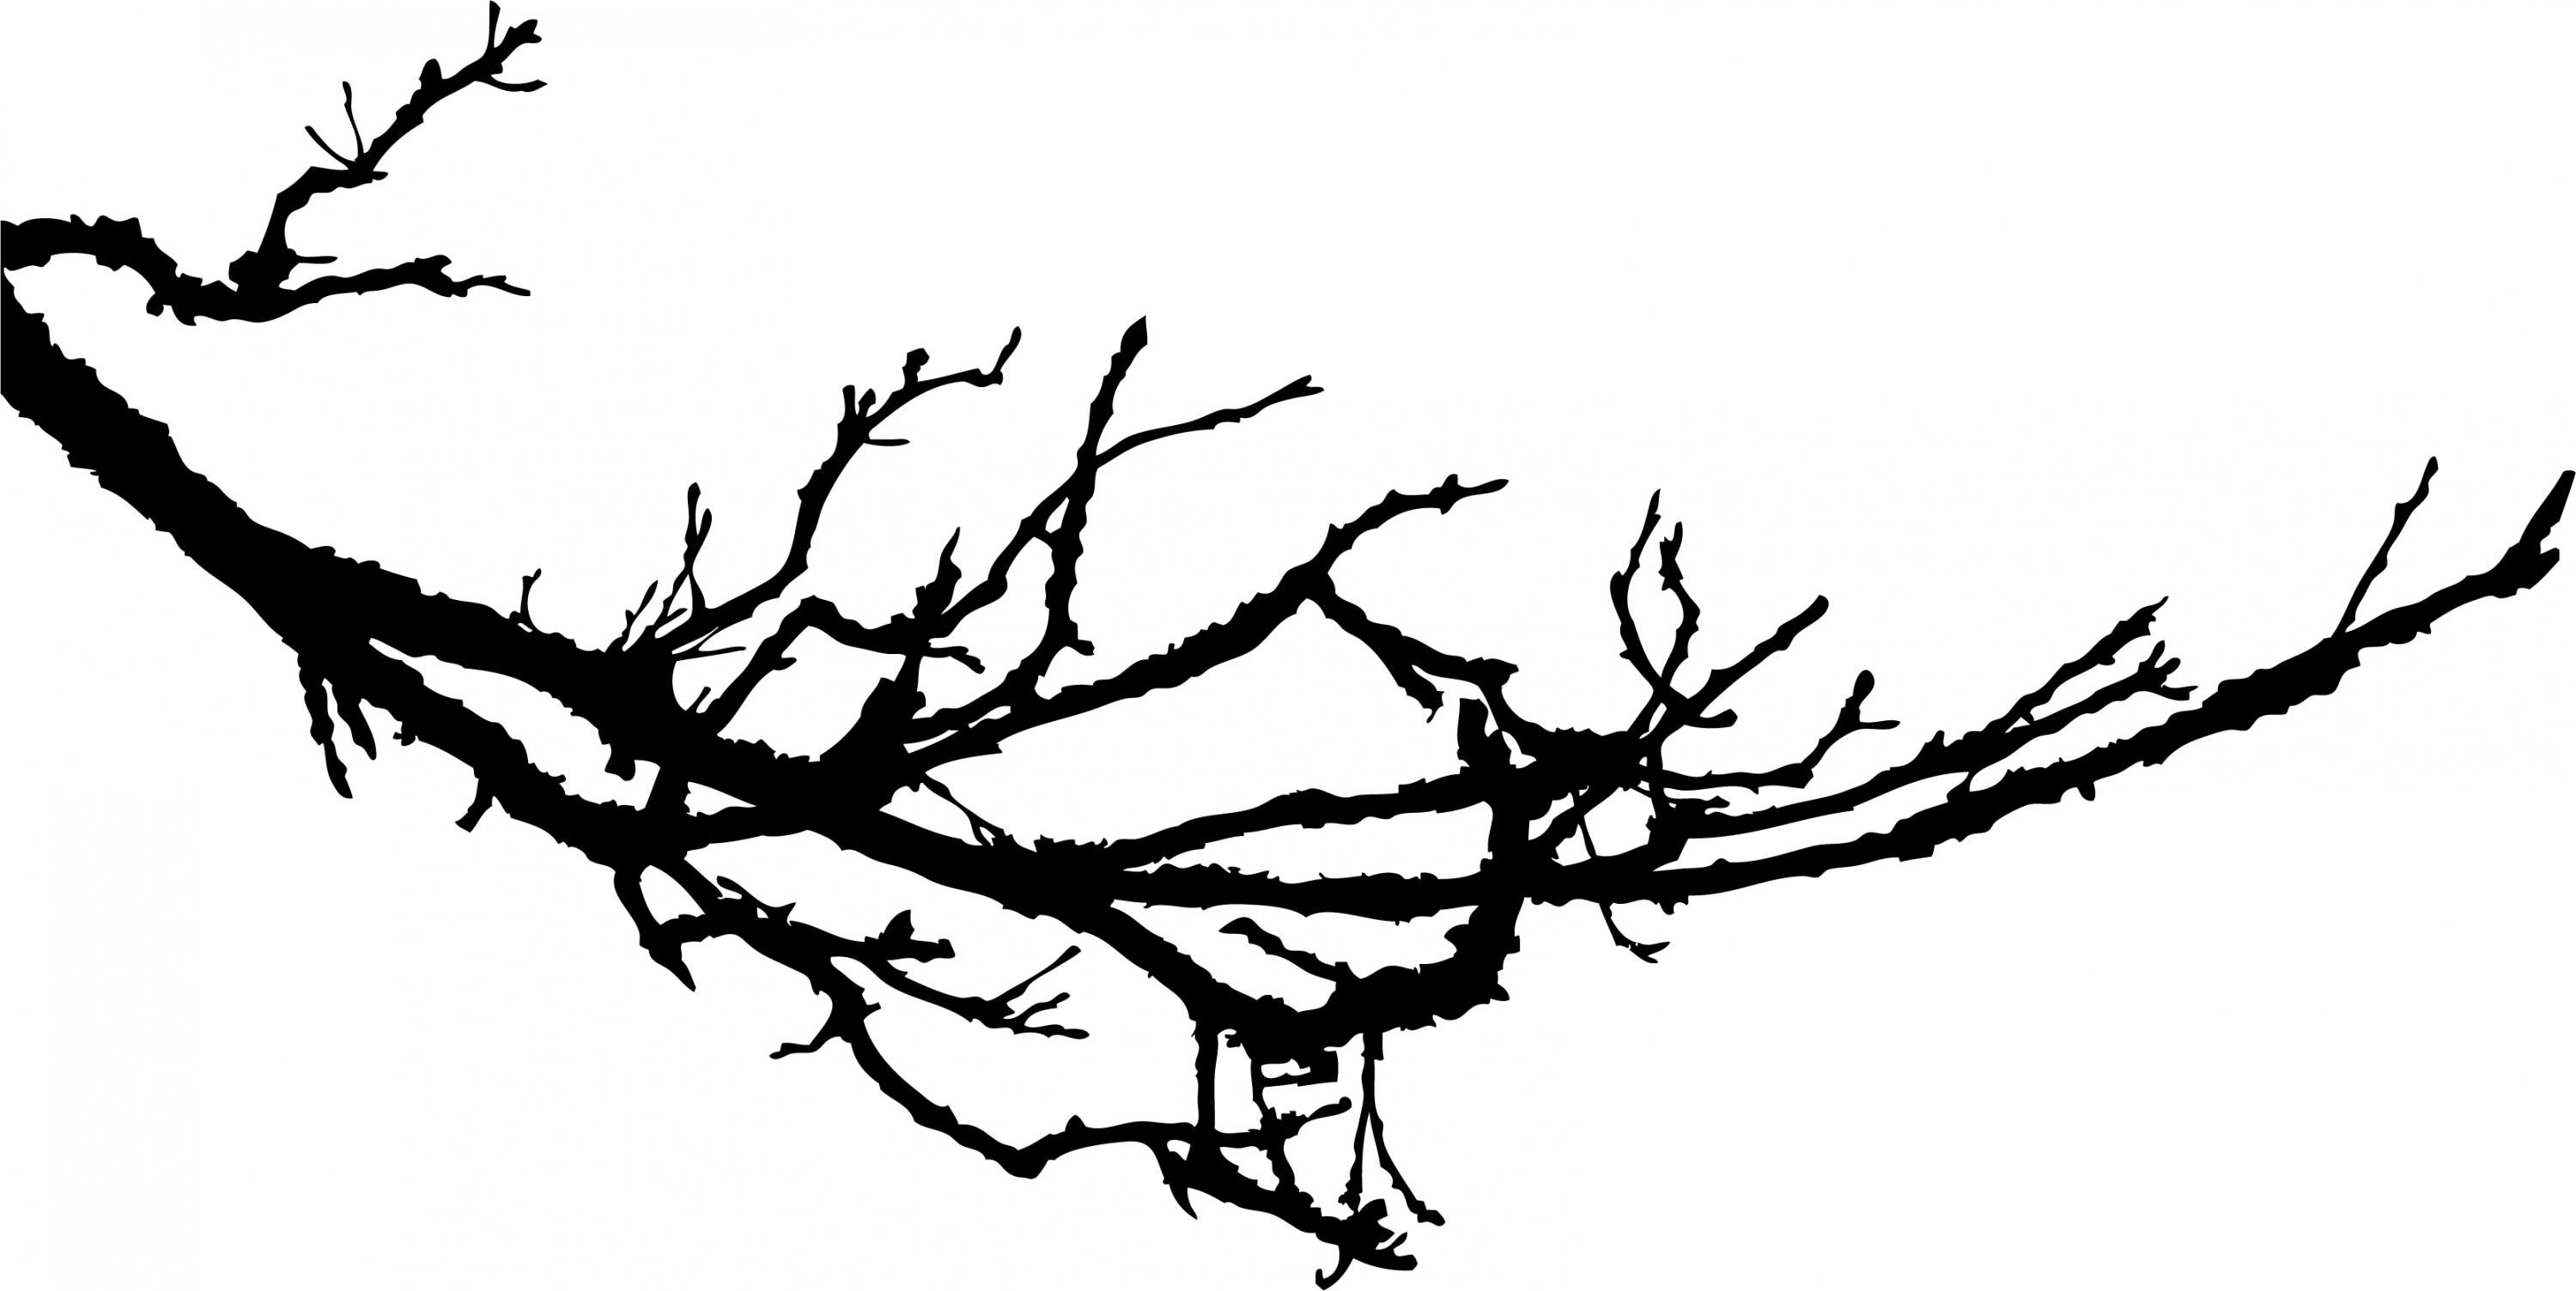 Tree Branches Clipart Silhouette 20 Free Cliparts